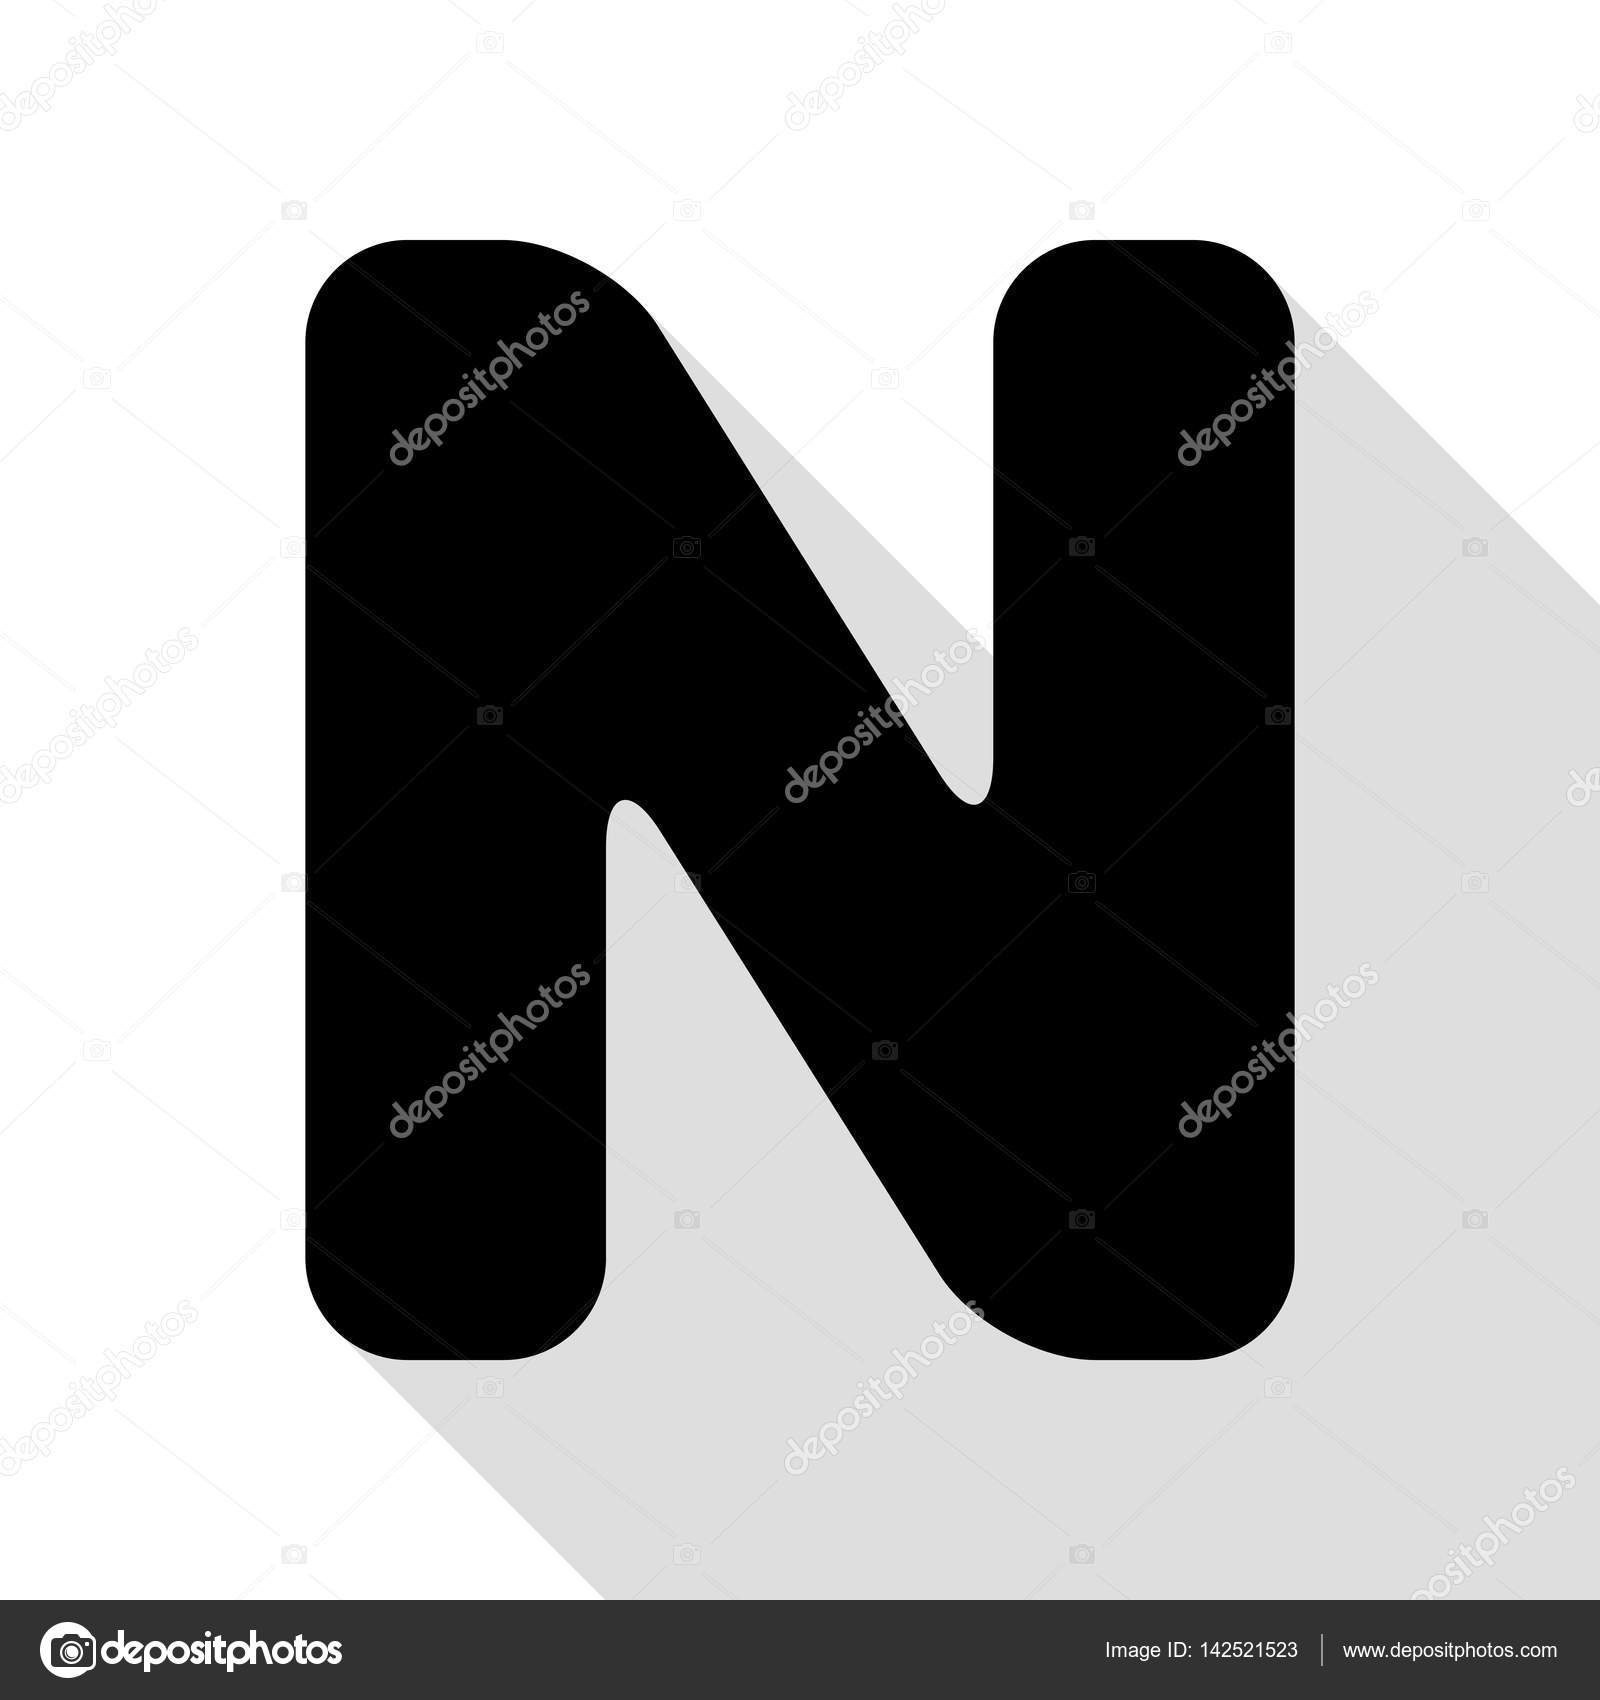 Letter N Sign Design Template Element Black Icon With Flat Style